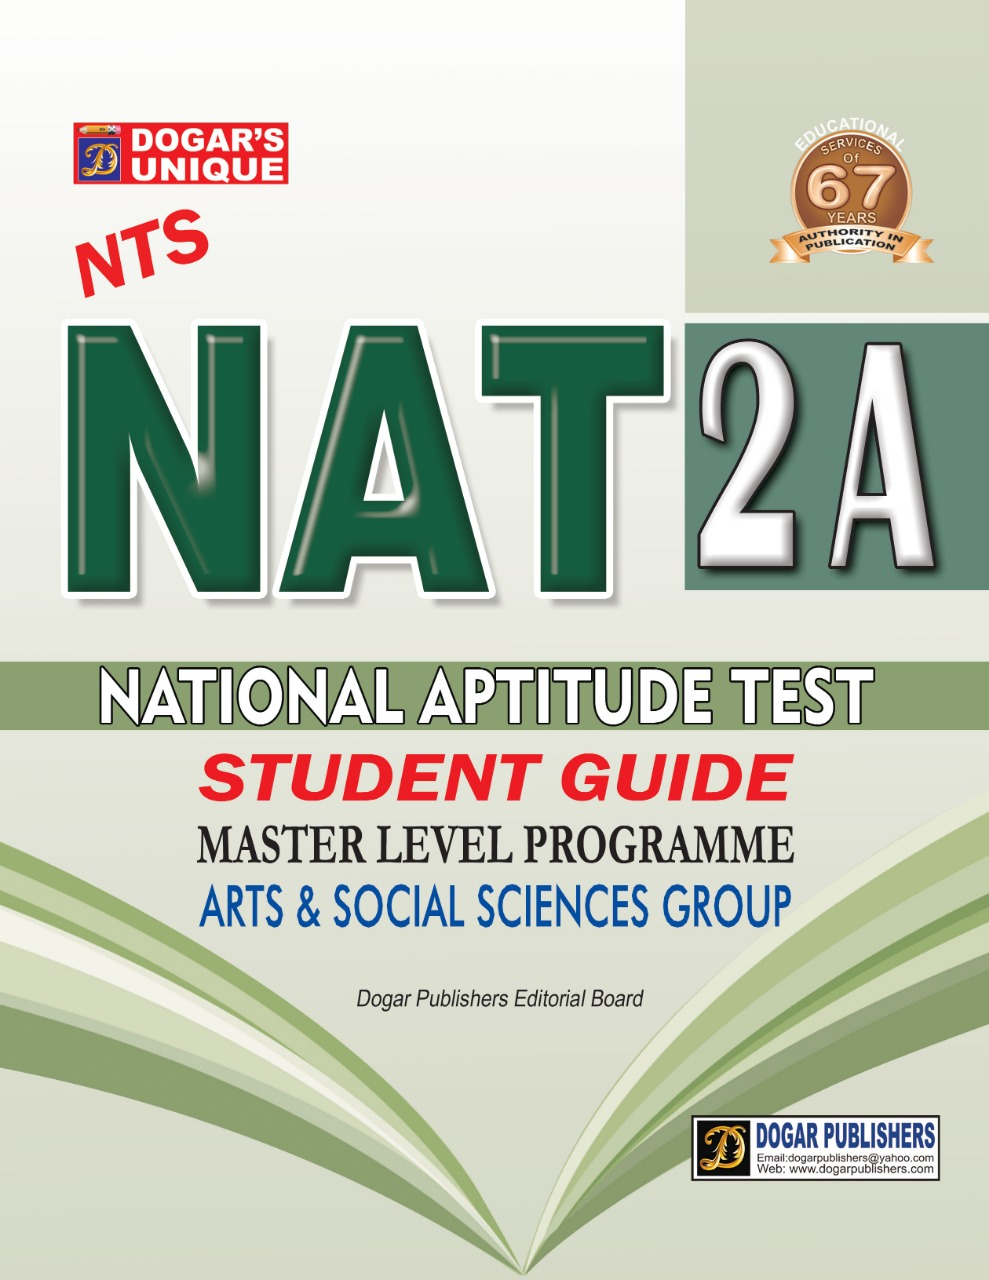 NTS (National Testing service) NAT 2A (National Aptitude Test) Master Level Programe Arts & Social Science Group